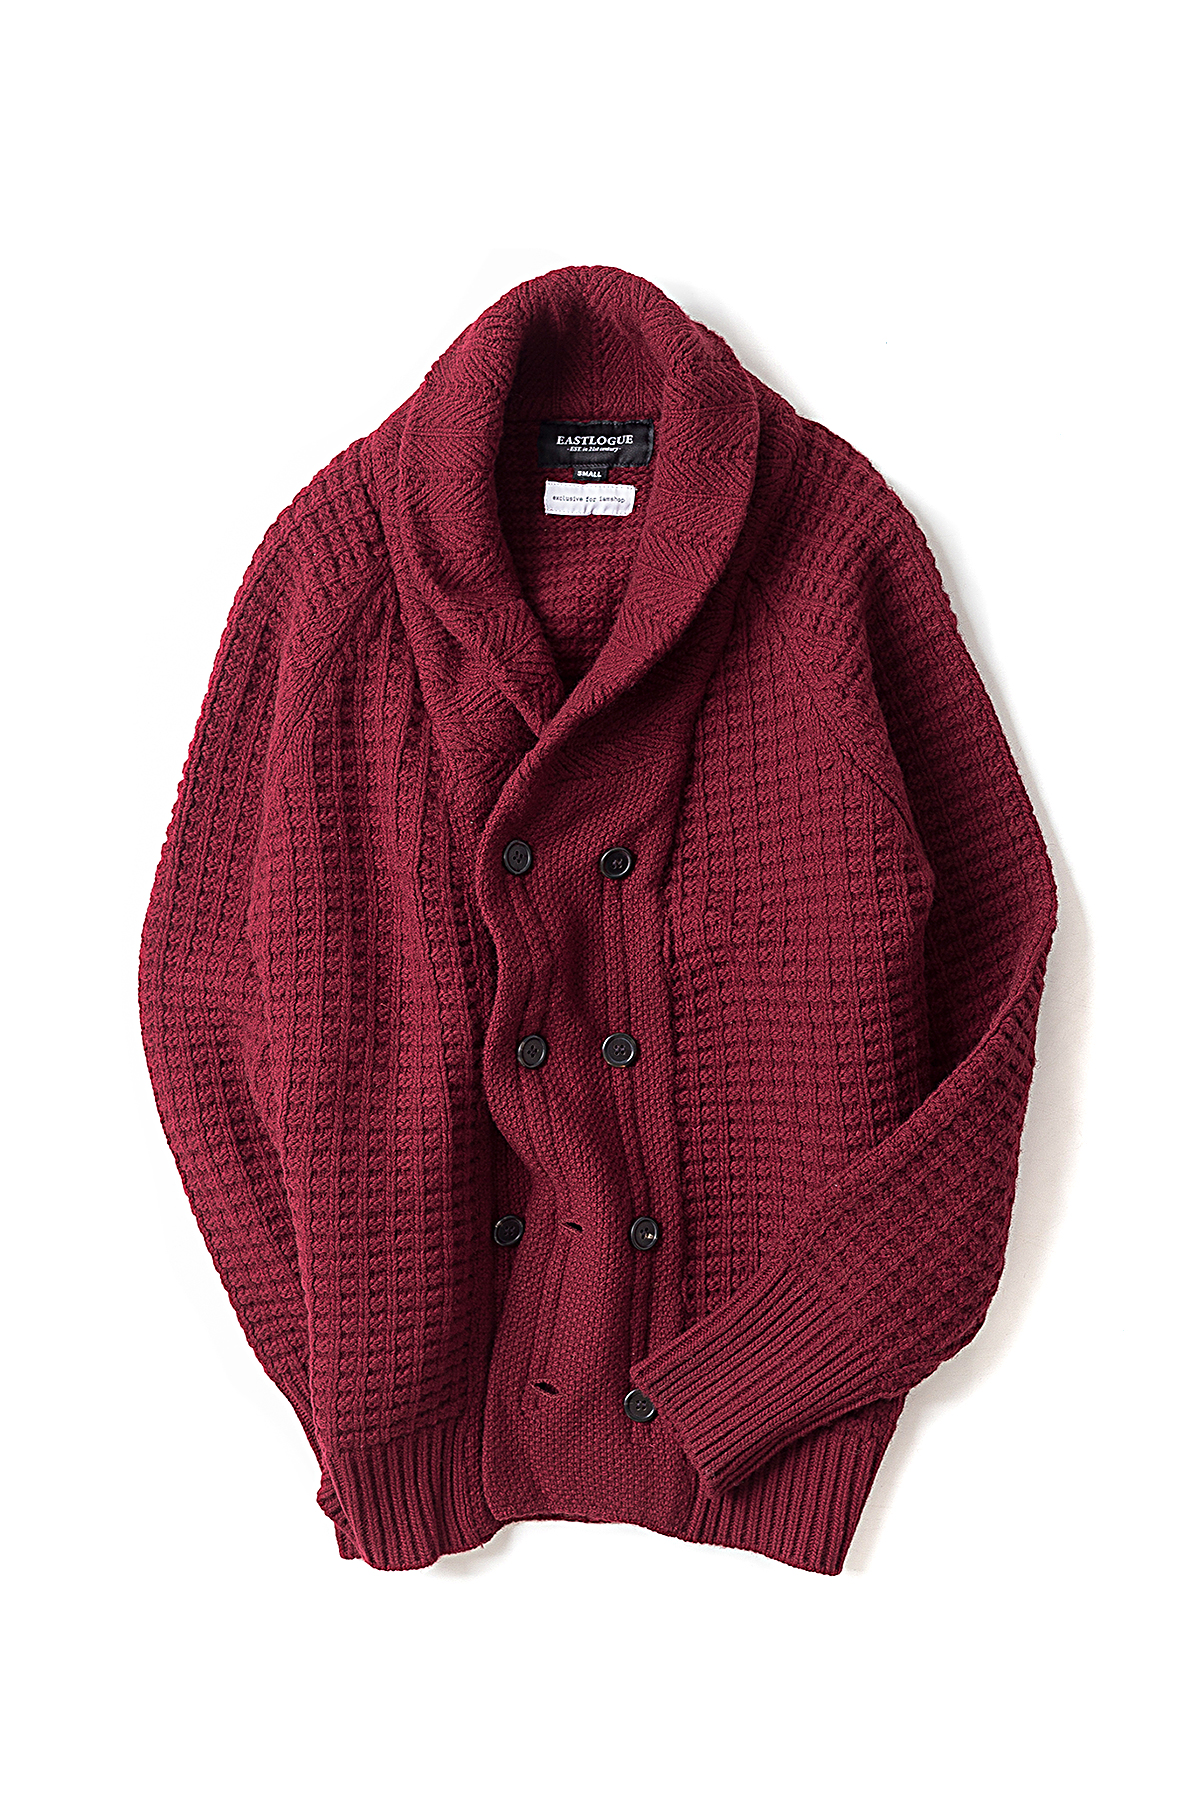 I AM SHOP X EL : Aran Jumper (Maroon)